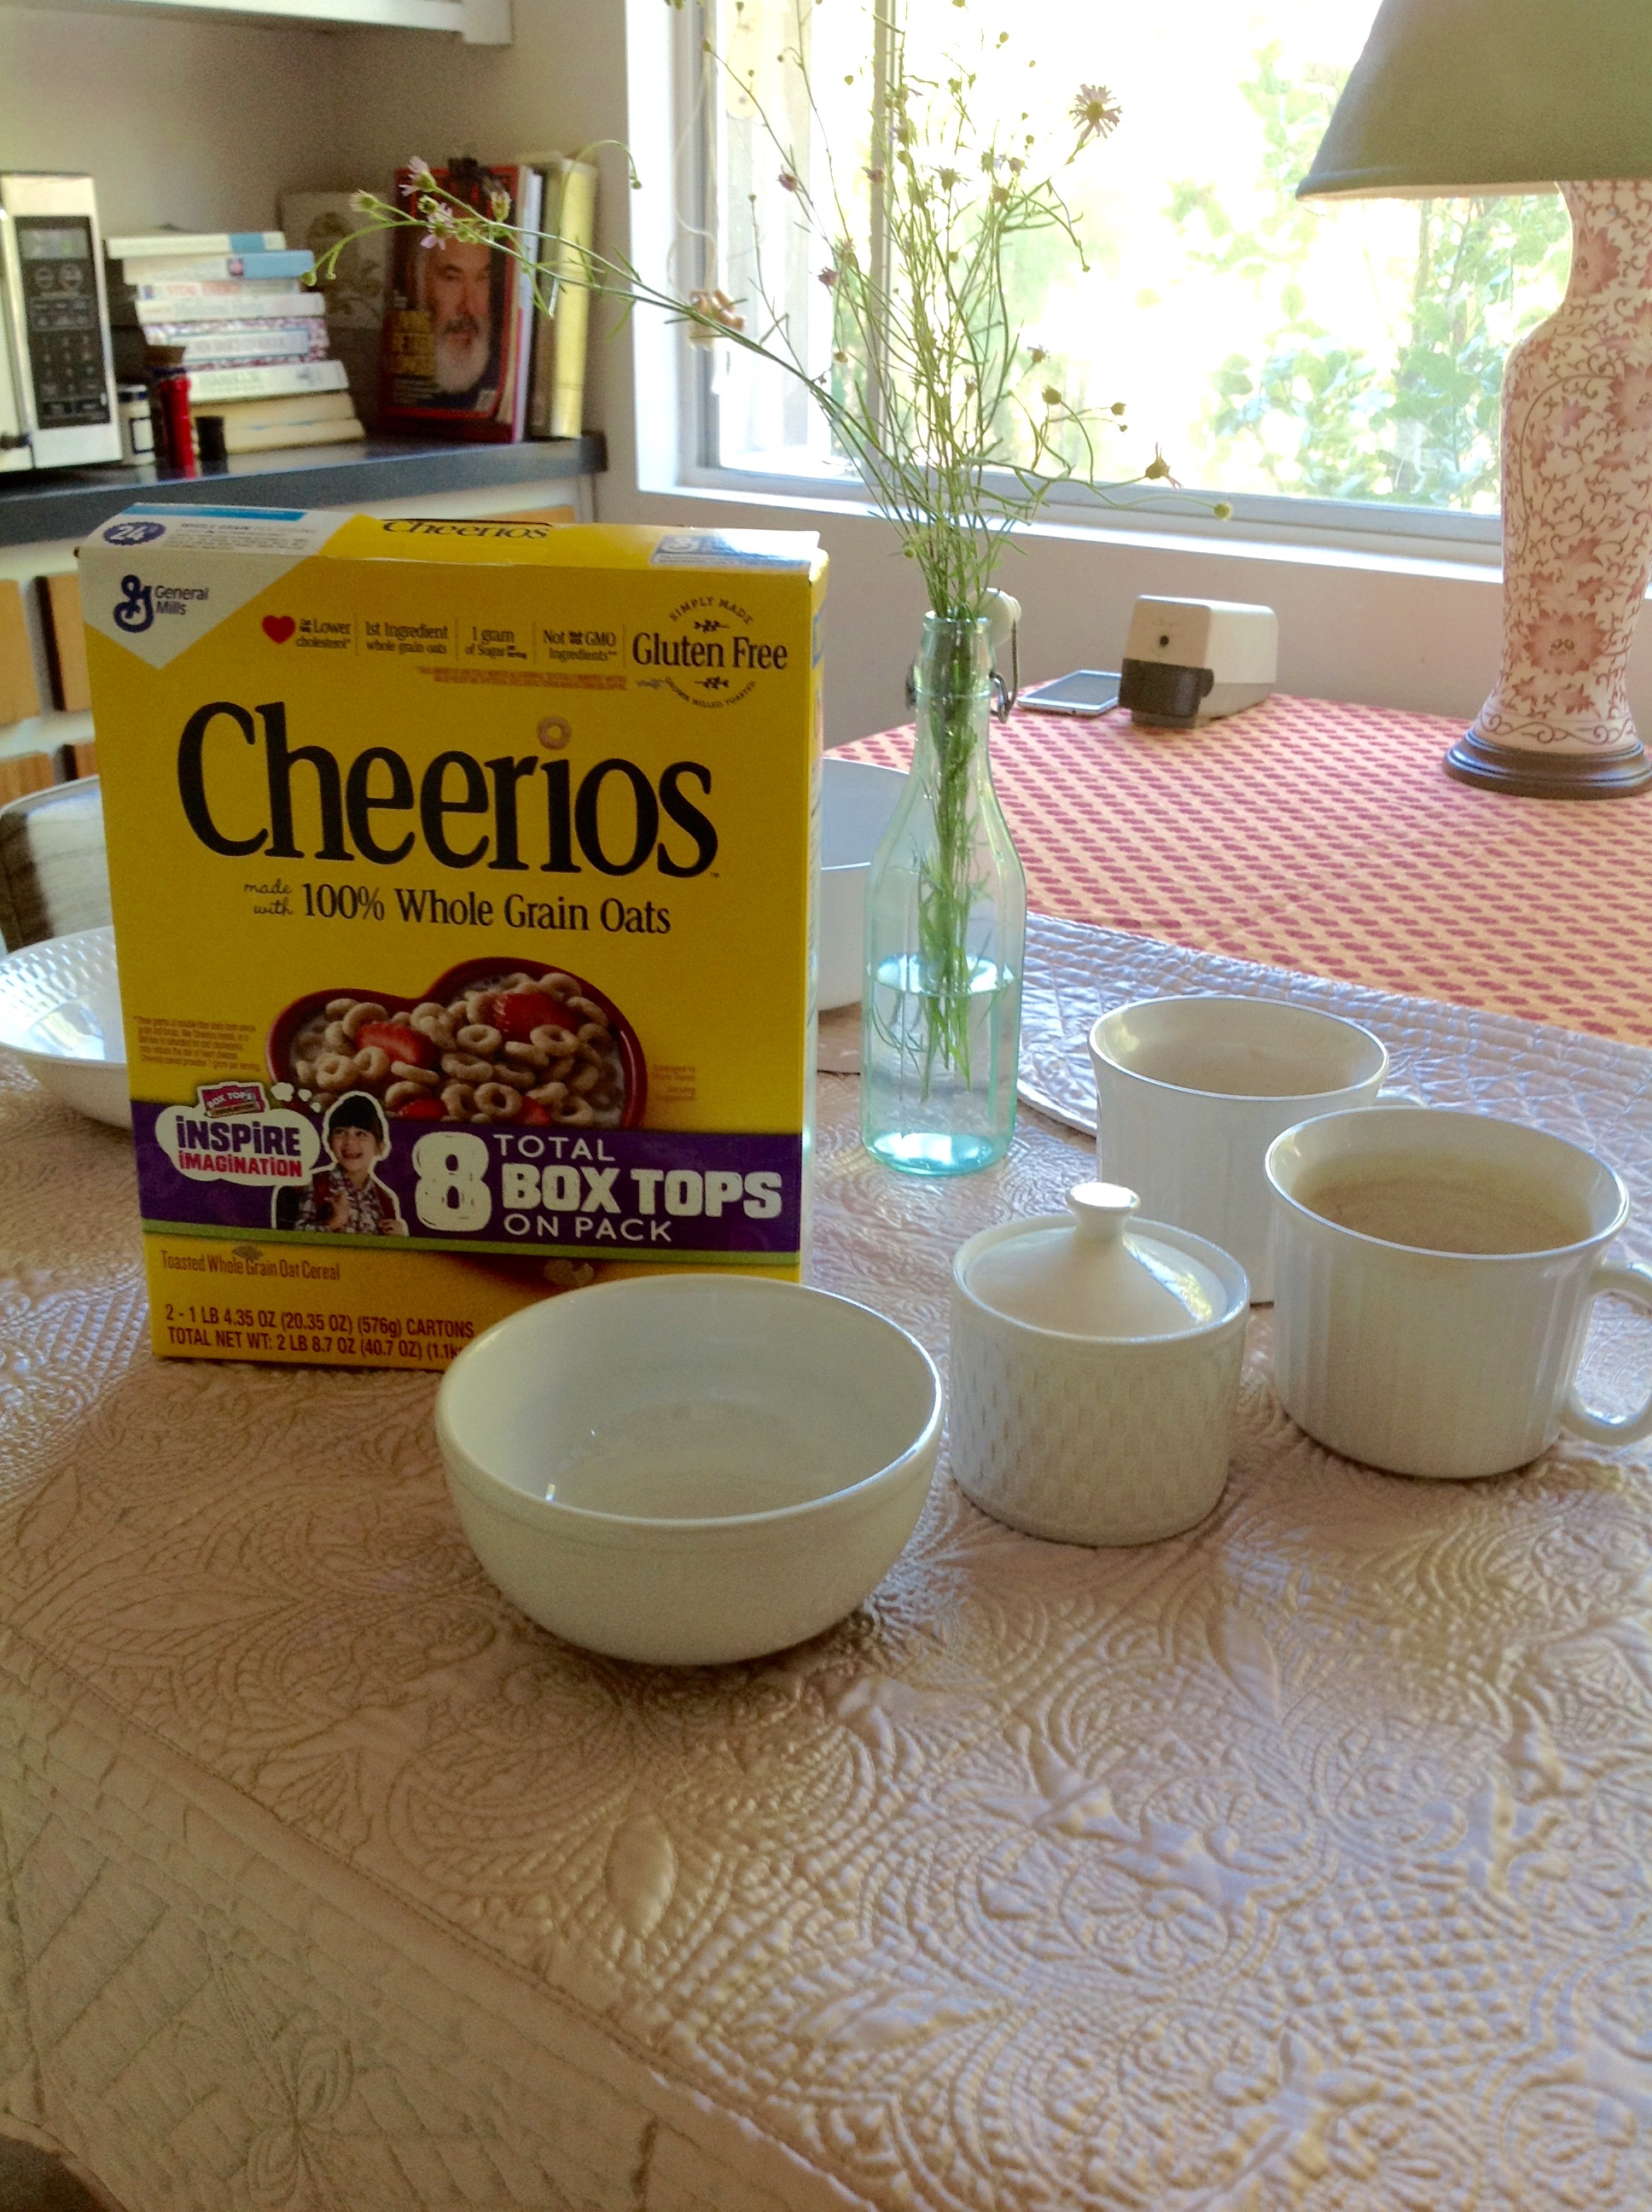 The Cheerios box works well for #Melon #Colorways and I pulled all of the crisp white dishes for a clean, cool summer look.